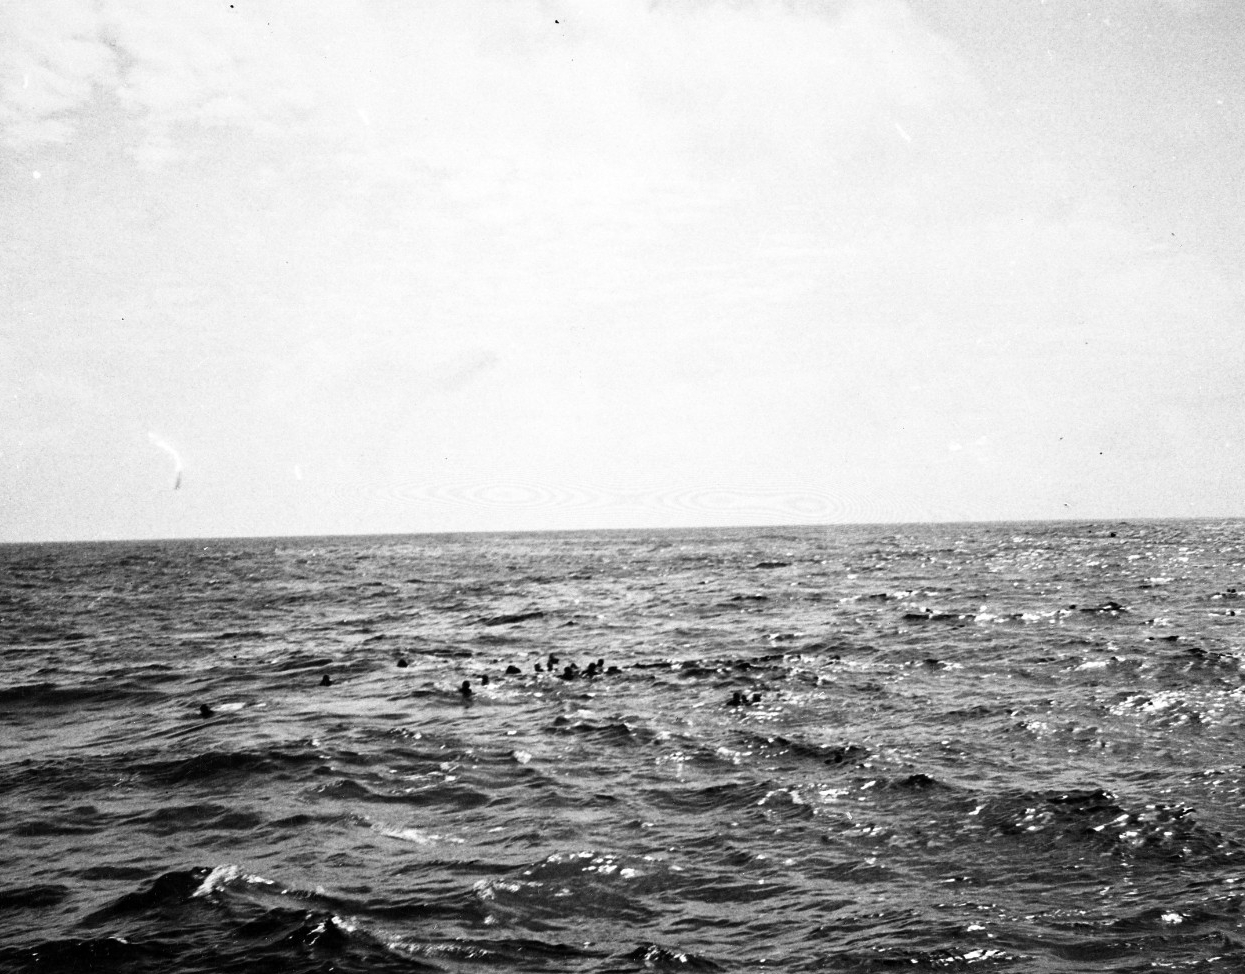 Survivors of U-515 await their rescue from the Atlantic, 9 April 1944. (U.S. Navy Photograph 80-G-228419, National Archives and Records Administration, Still Pictures Division, College Park, Md.)